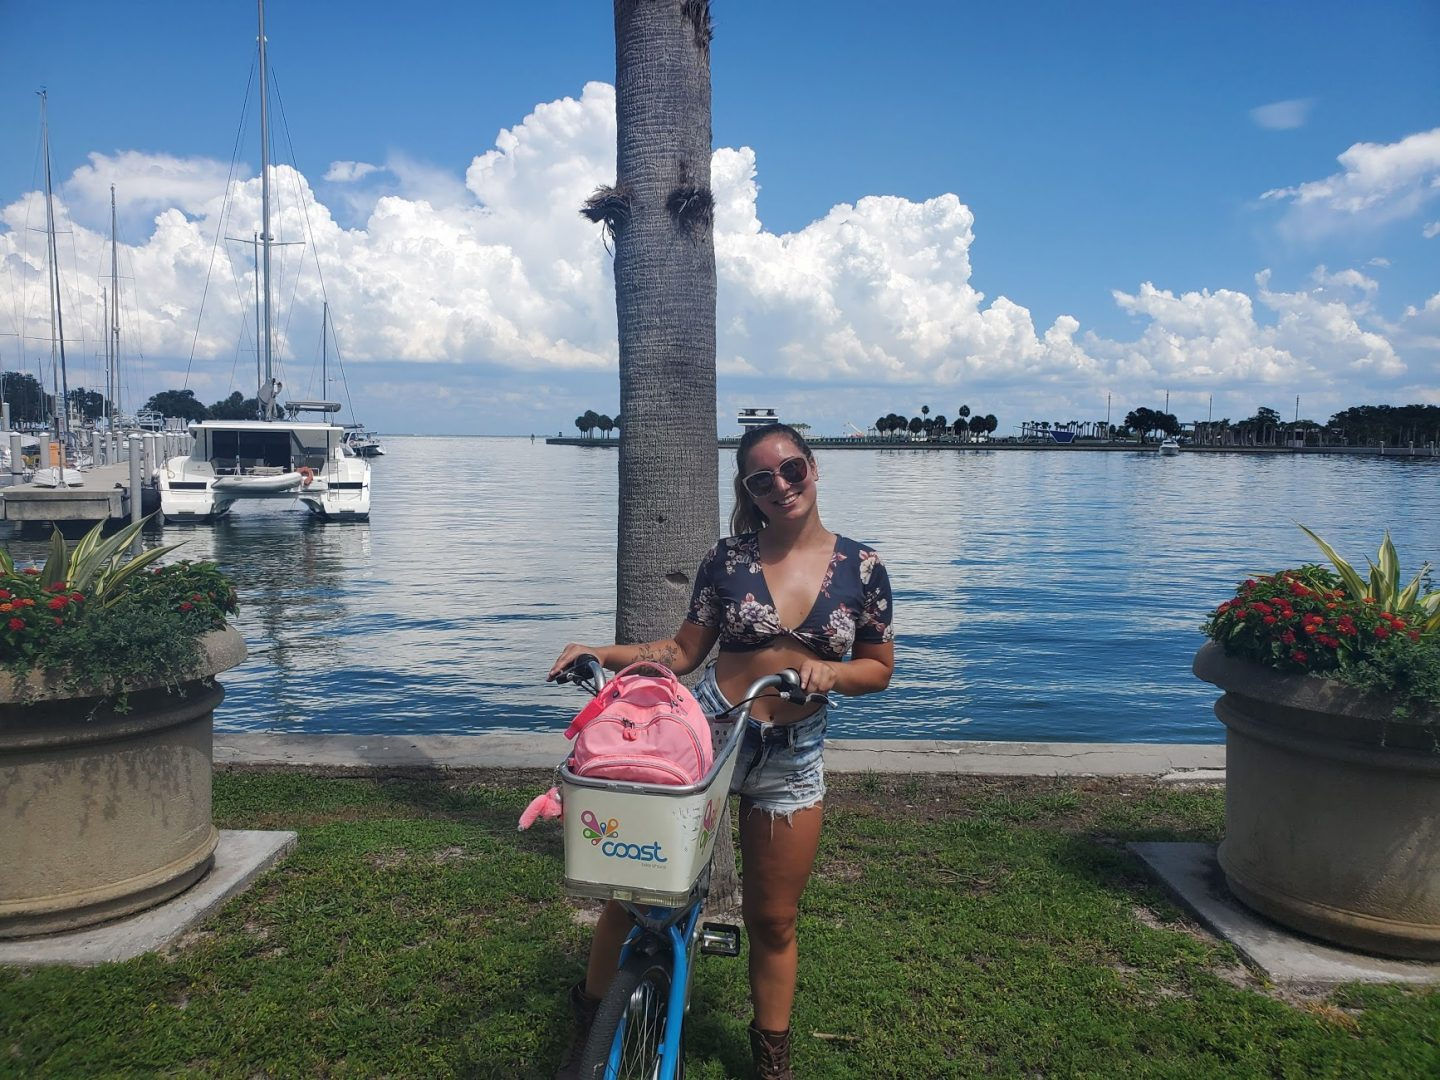 Biking in downtown St. Petersburg, Florida